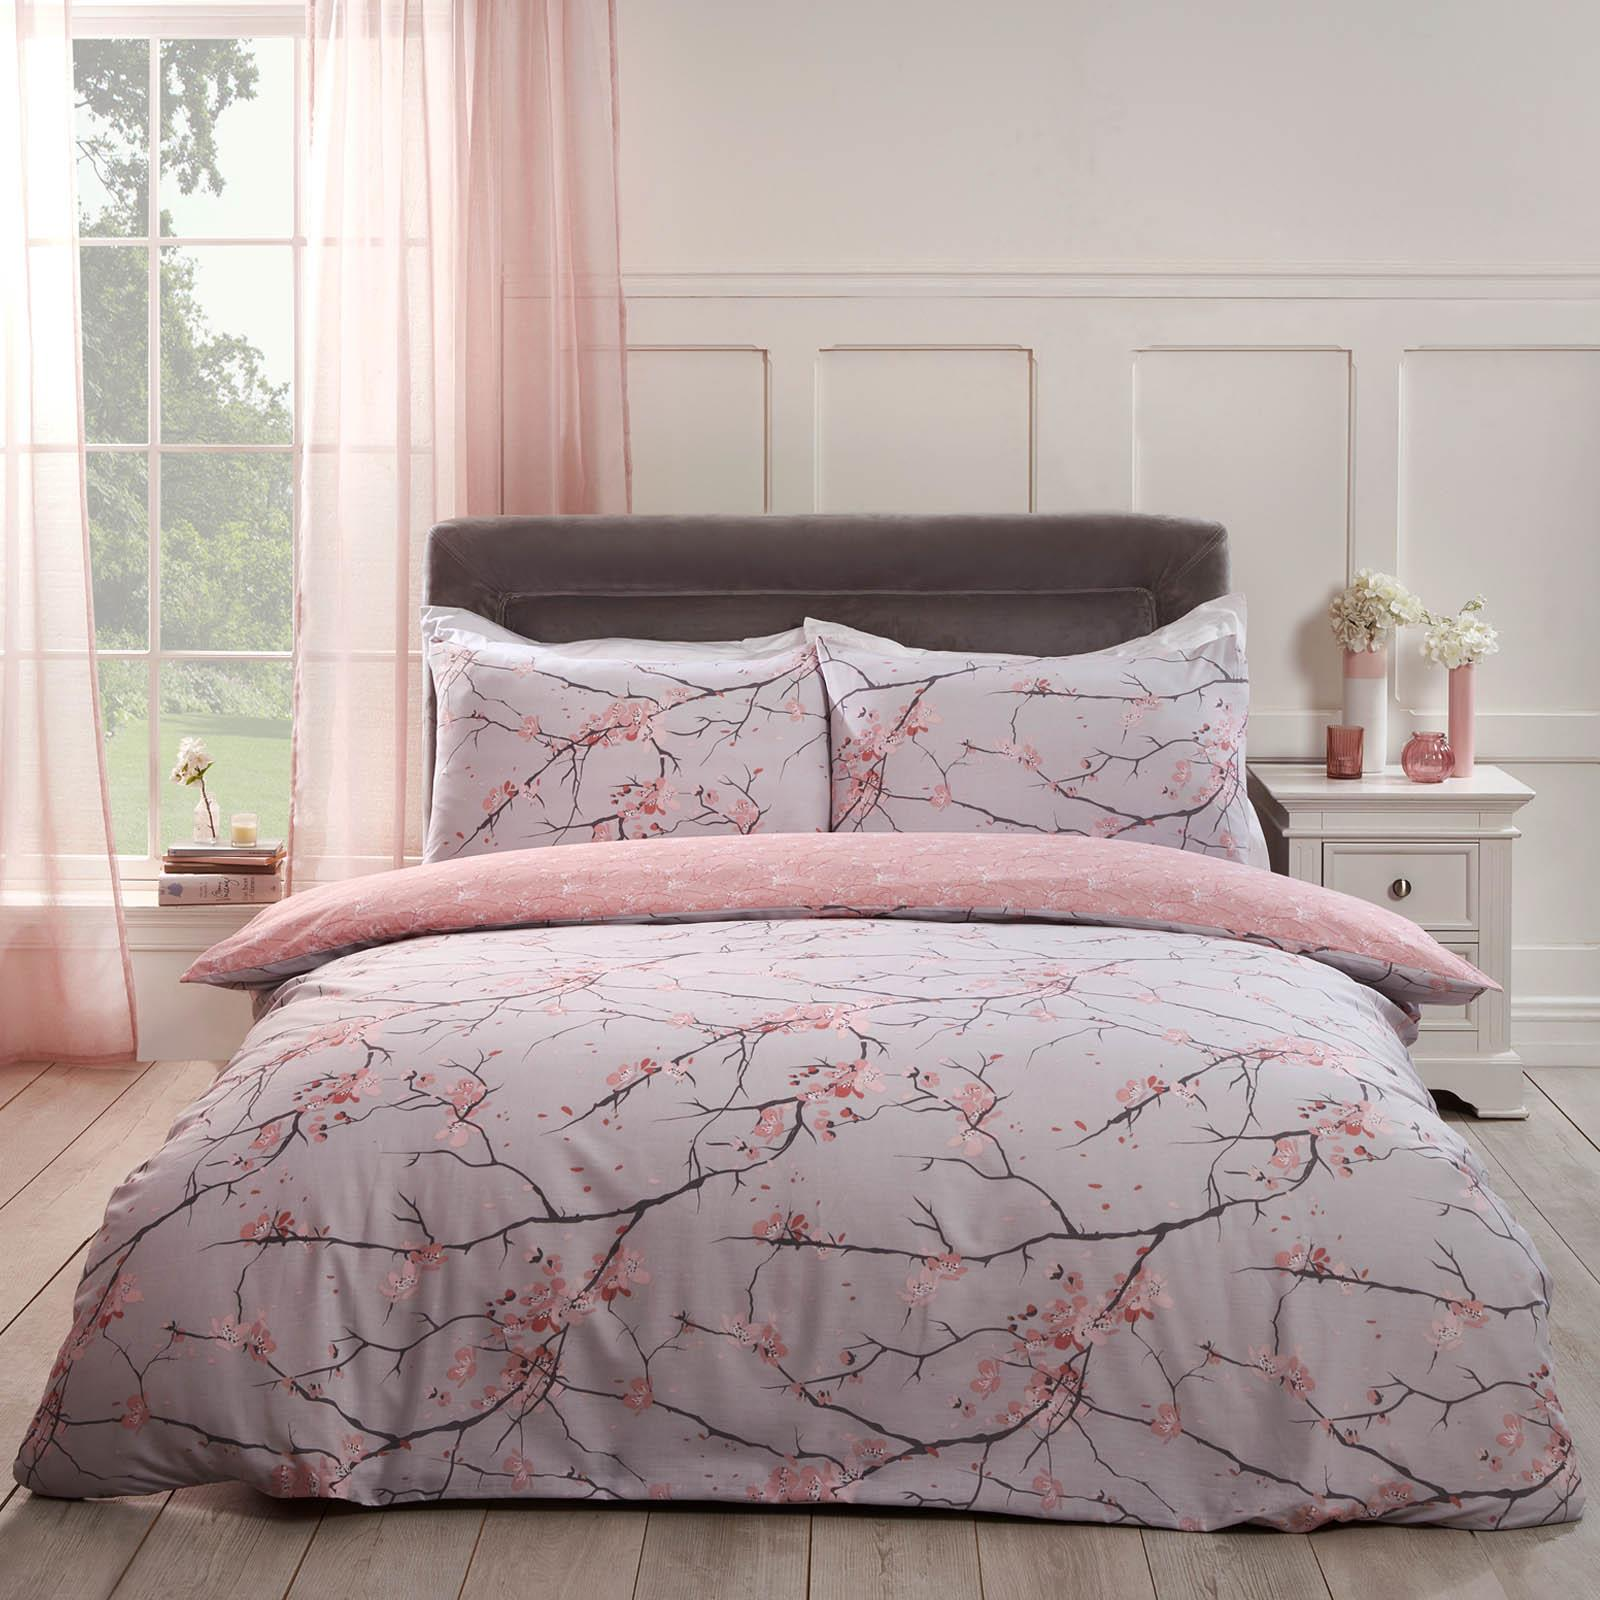 thumbnail 4 - Dreamscene Spring Blossoms Duvet Cover with Pillowcases Bedding Set Blush Ochre